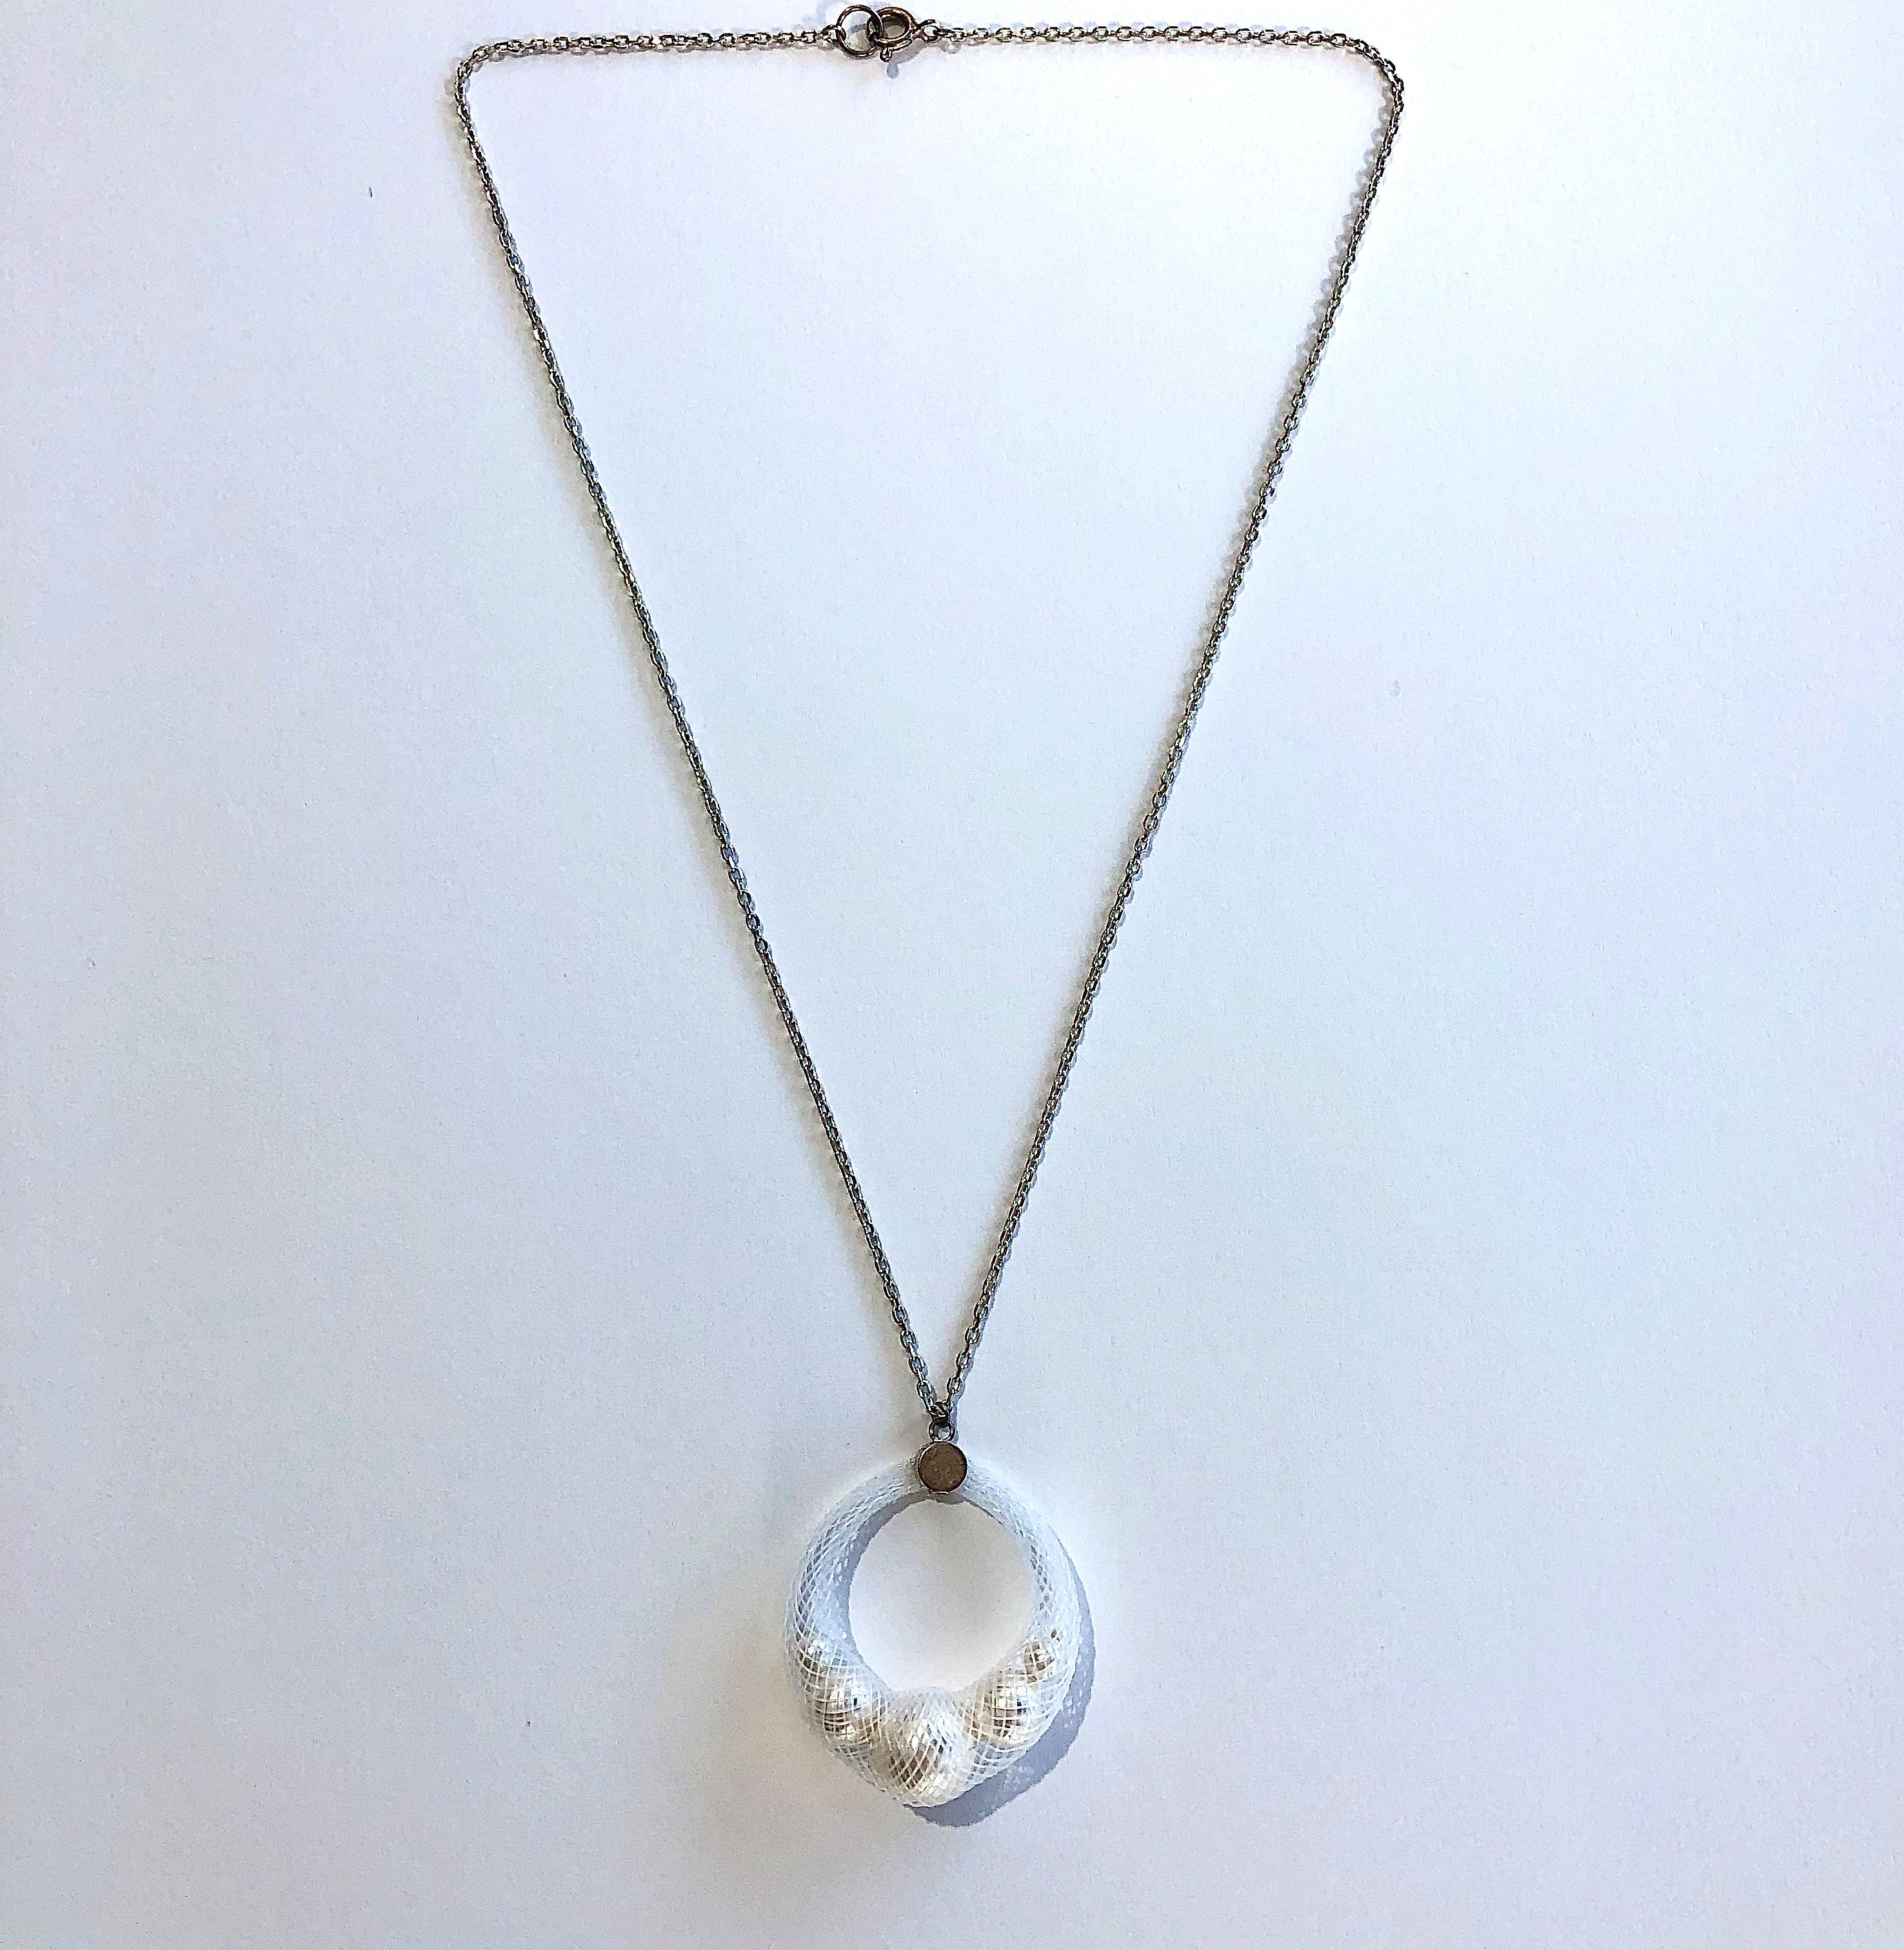 White Dyed nylon mesh and Swarovski Pearls with sterling silver chain